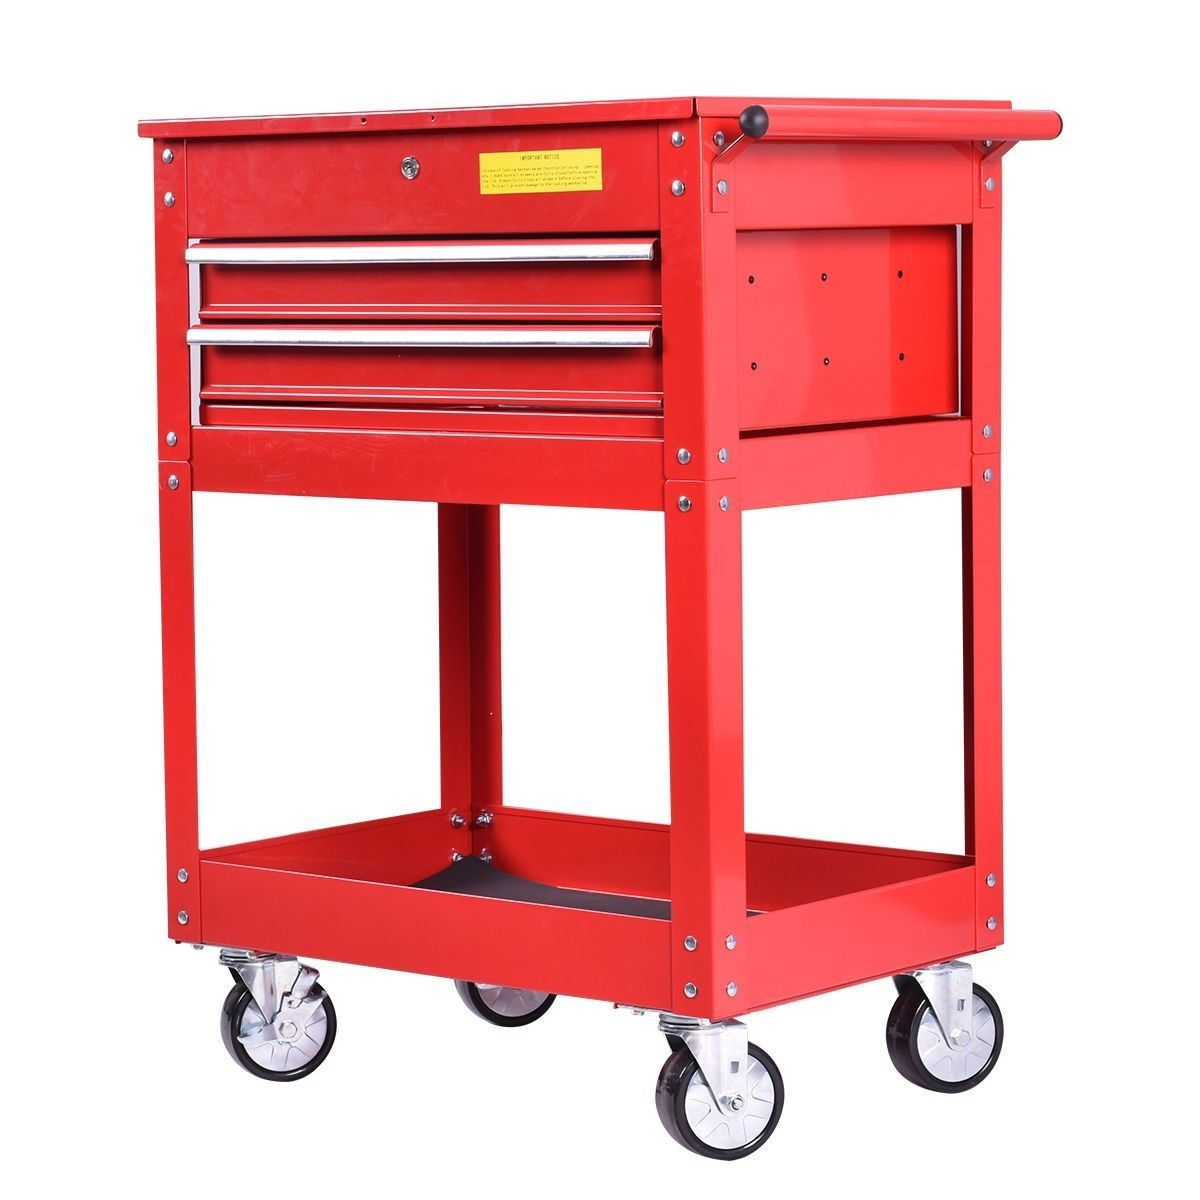 Stainless Steel Utility Cart With Drawers further Modern Jewelry Cabi  In Antique Silver as well 131959557919 together with Alfa Img Showing Round Recessed Hinges Cabi s 2f3d1bac0c217ab2 also Watch. on 15 drawer rolling storage cabinet